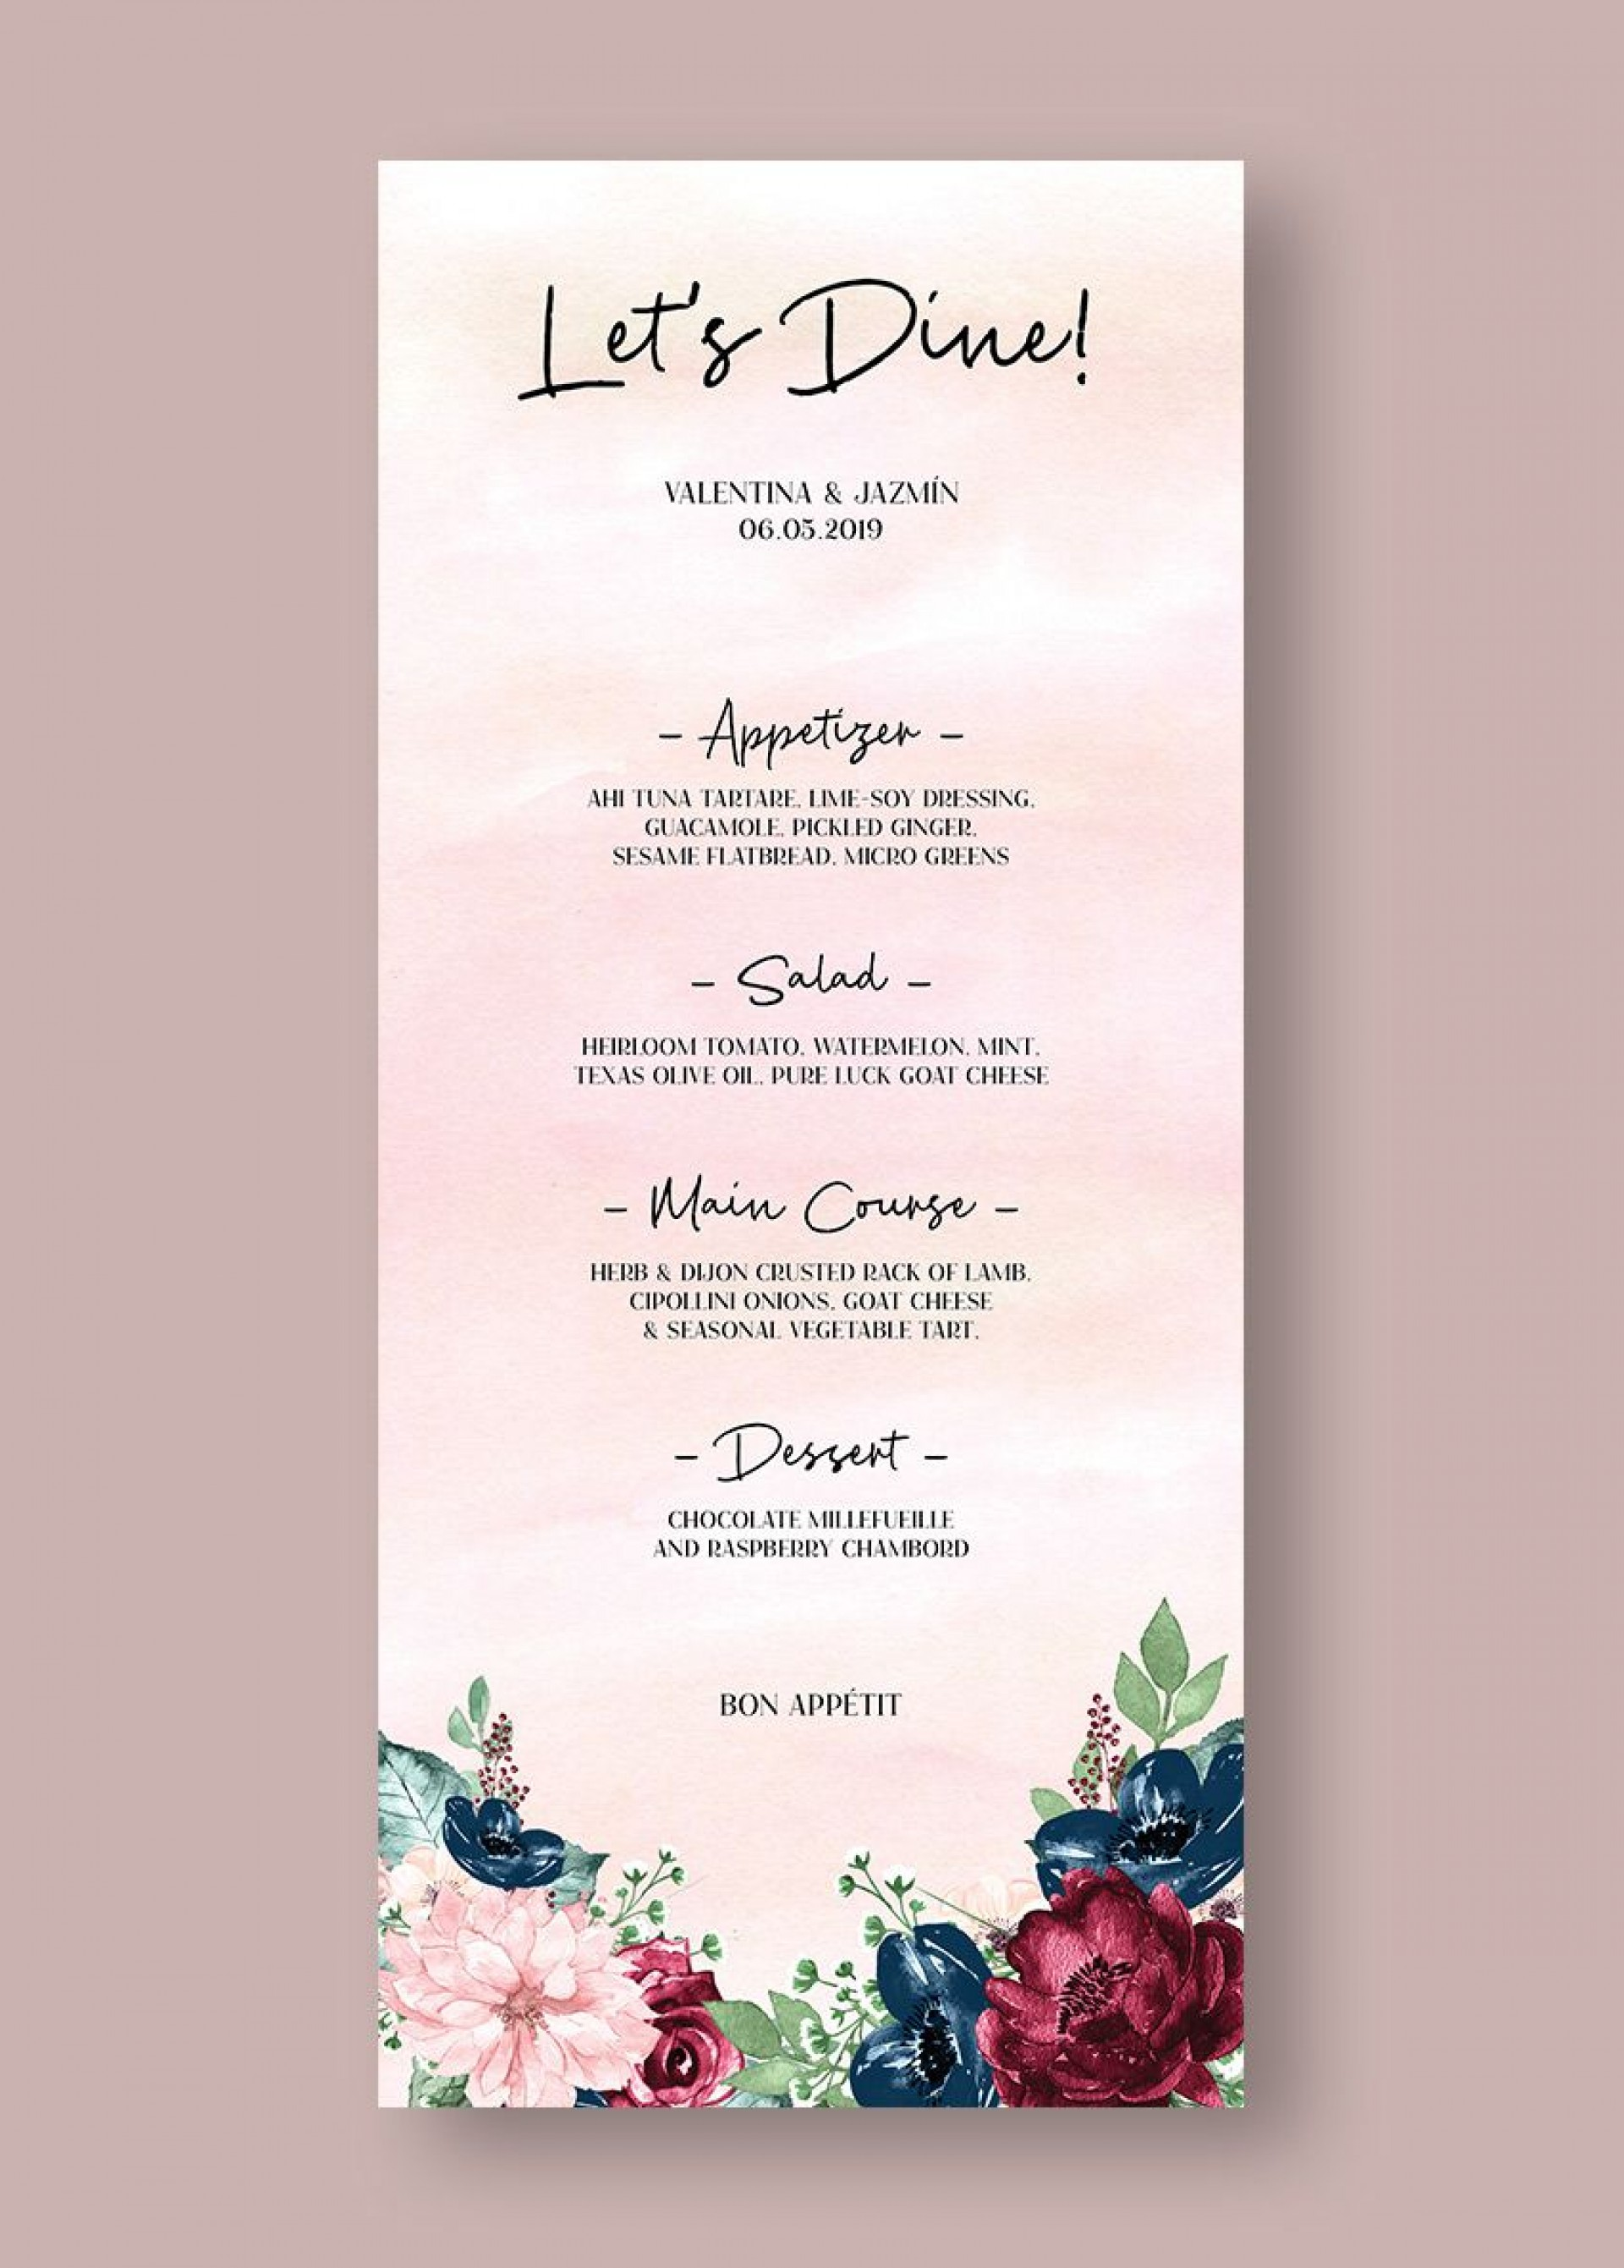 001 Unbelievable Free Wedding Menu Template Highest Clarity  Templates Printable For Mac1920